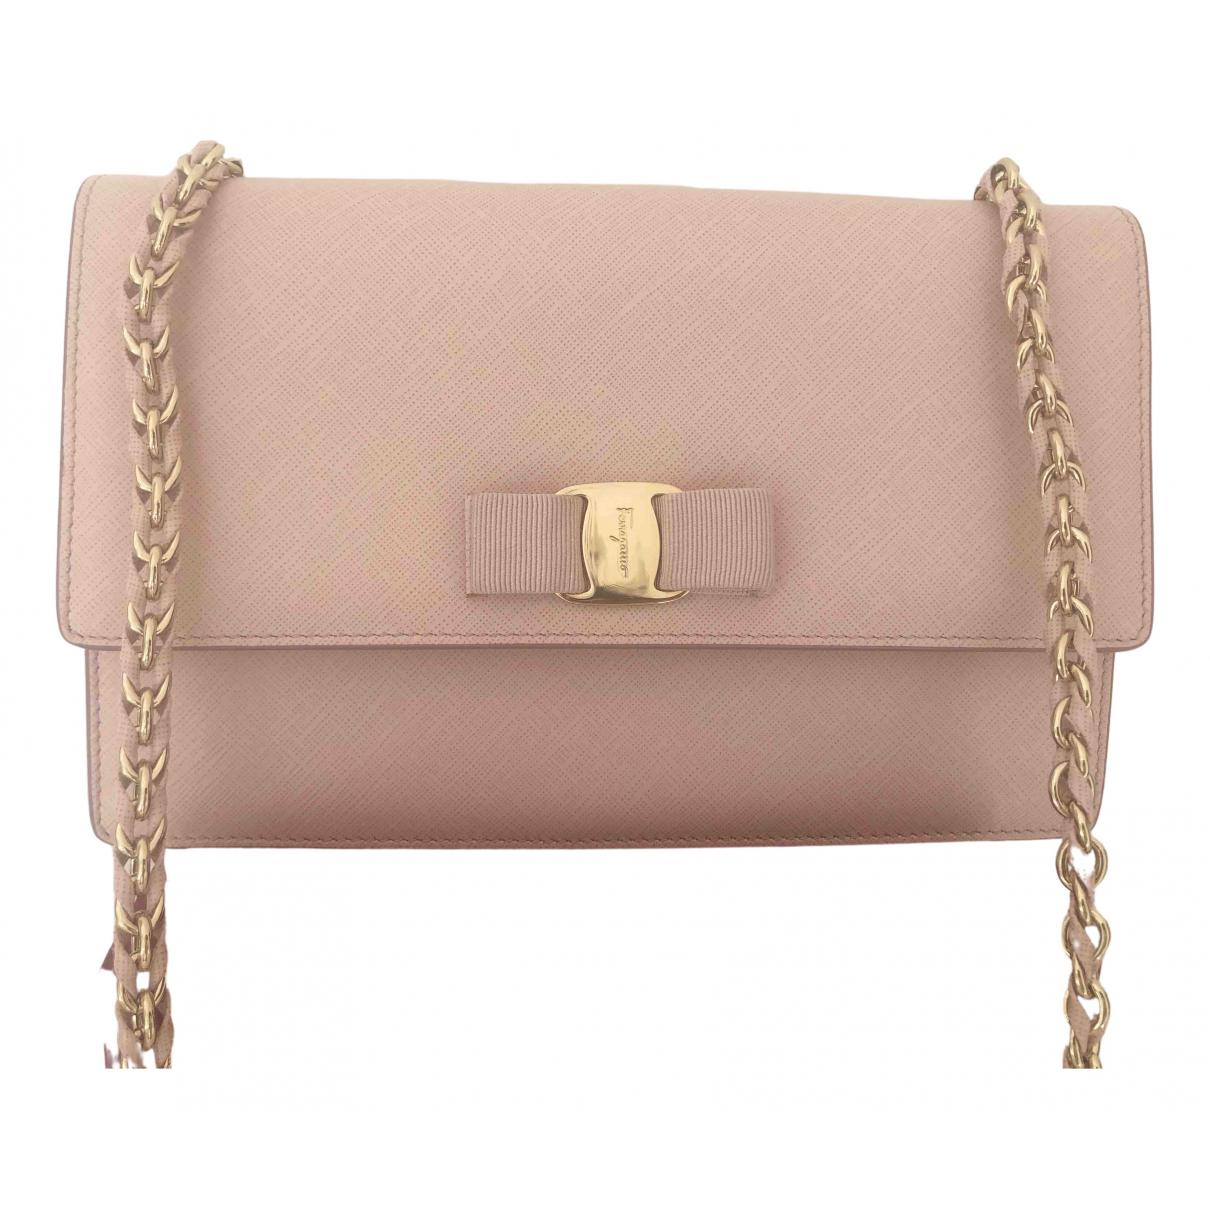 Salvatore Ferragamo \N Pink Leather handbag for Women \N